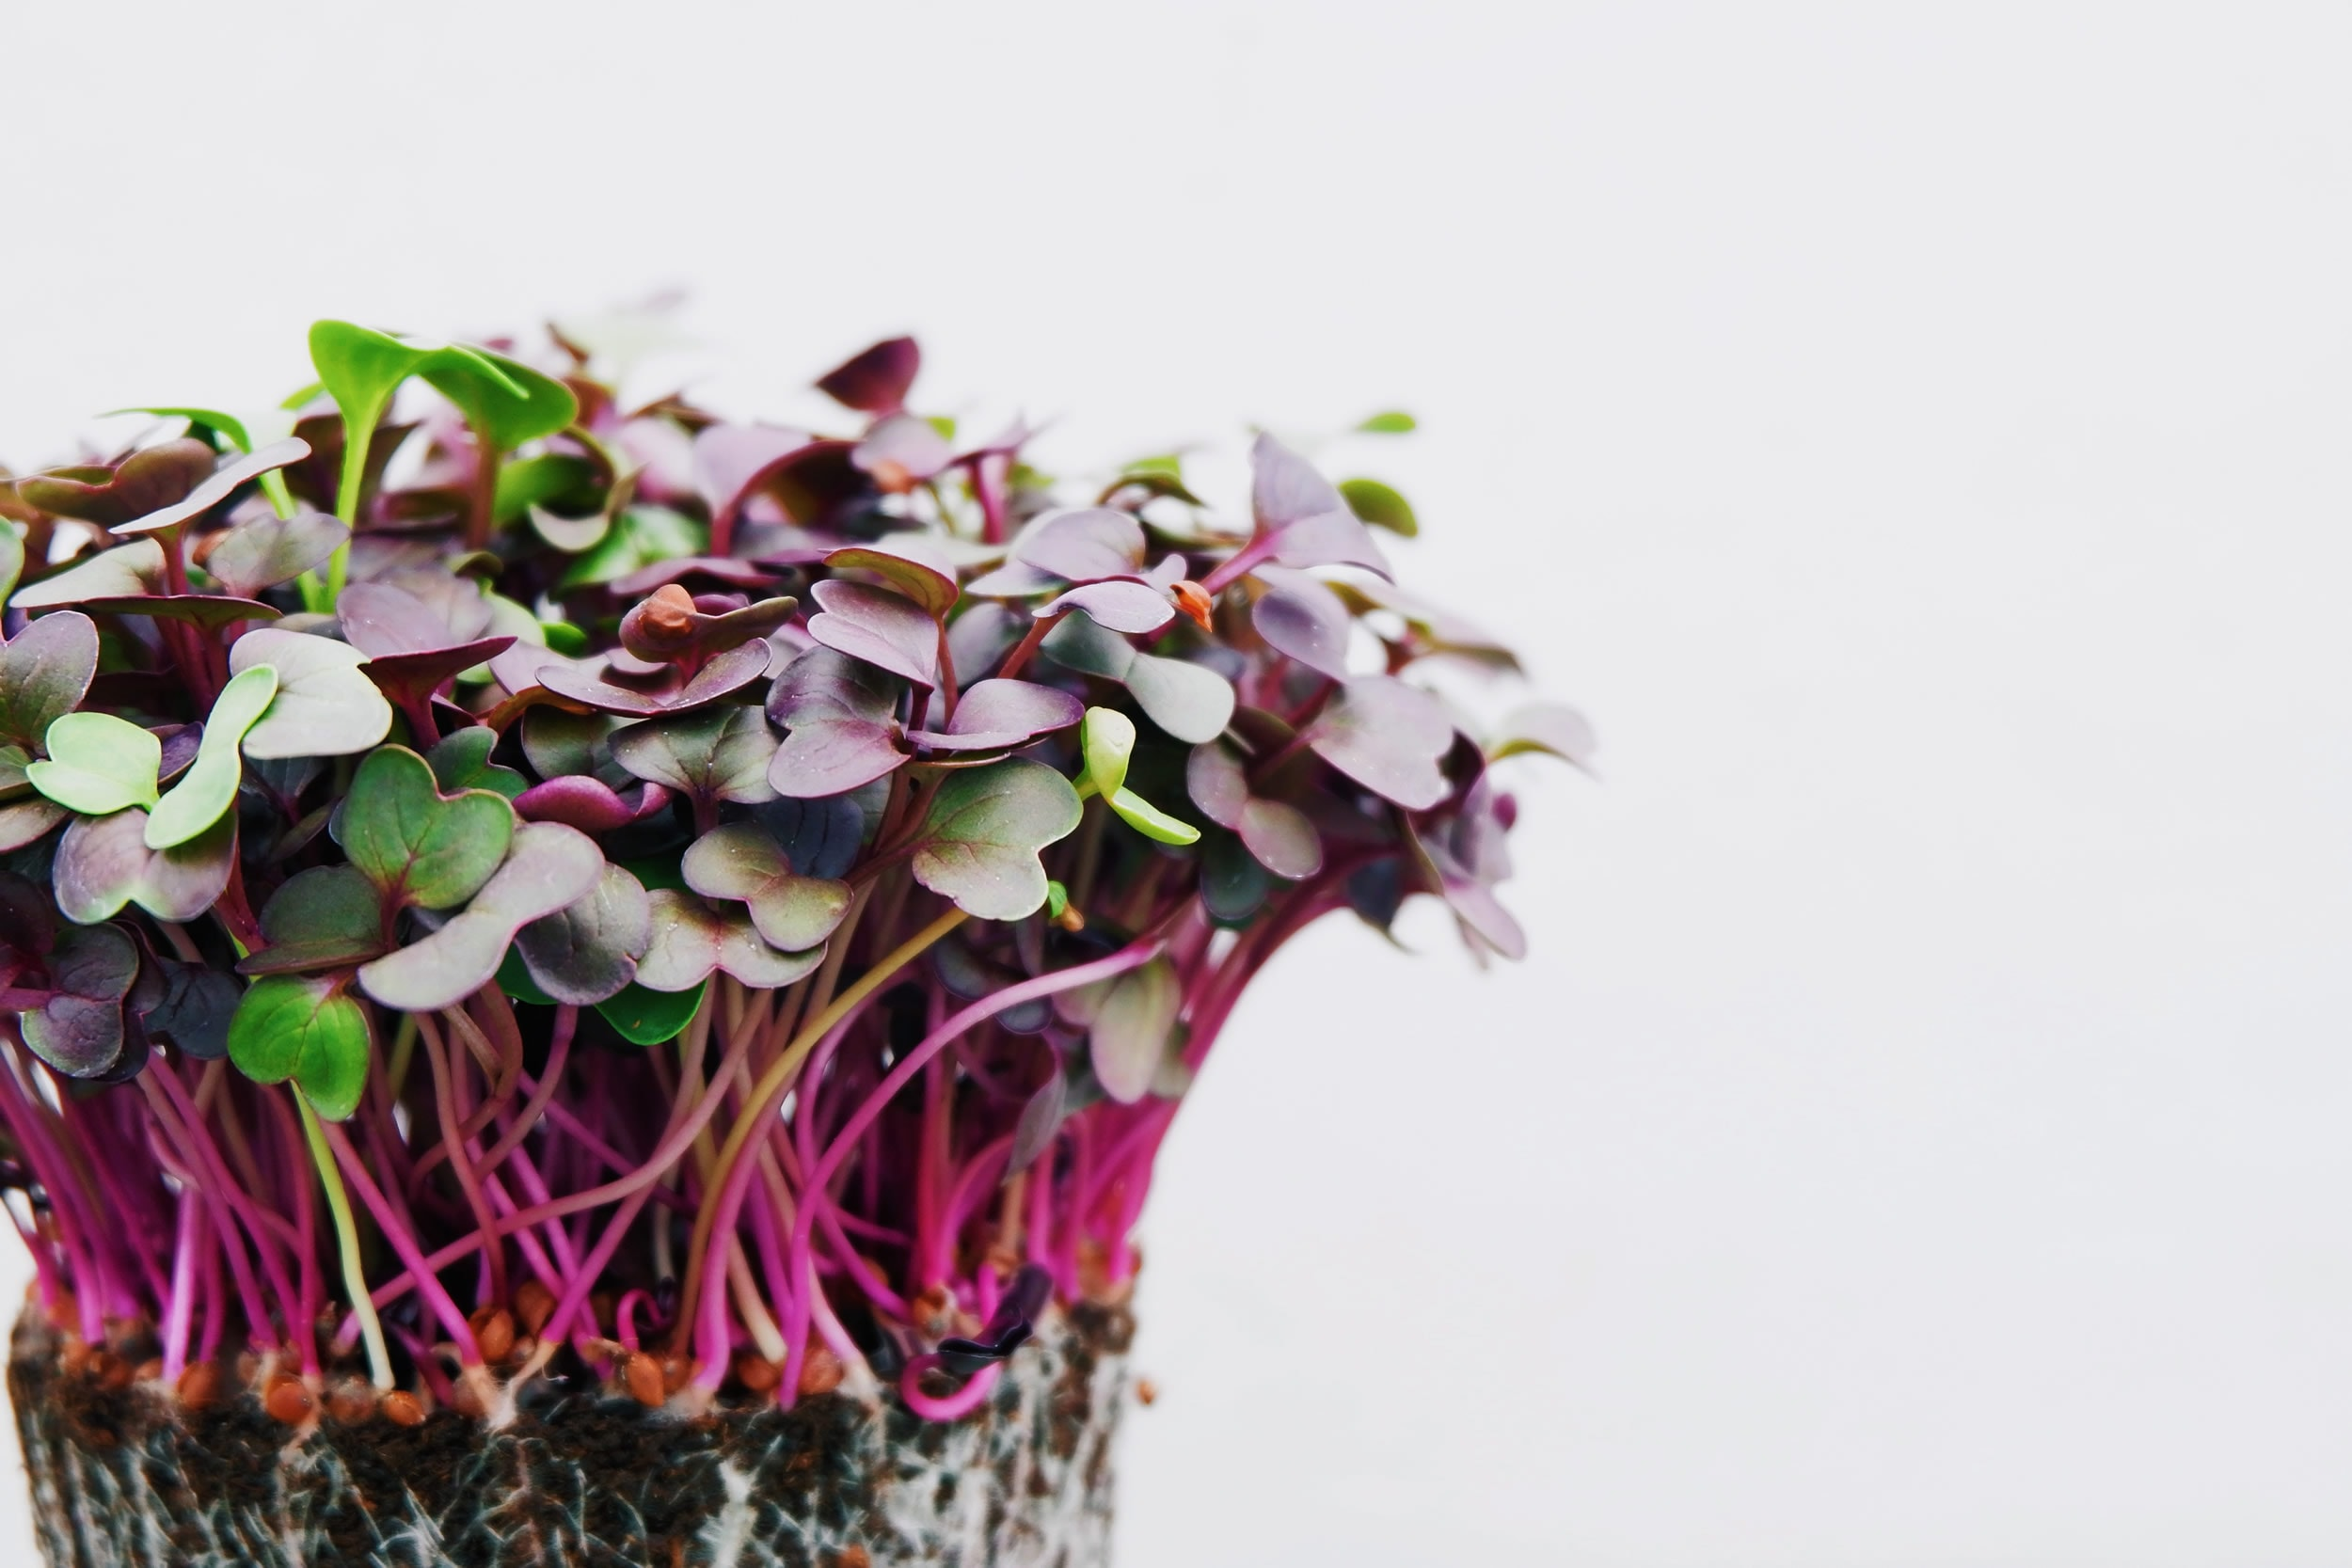 how to grow vegetables indoors for beginners: microgreens